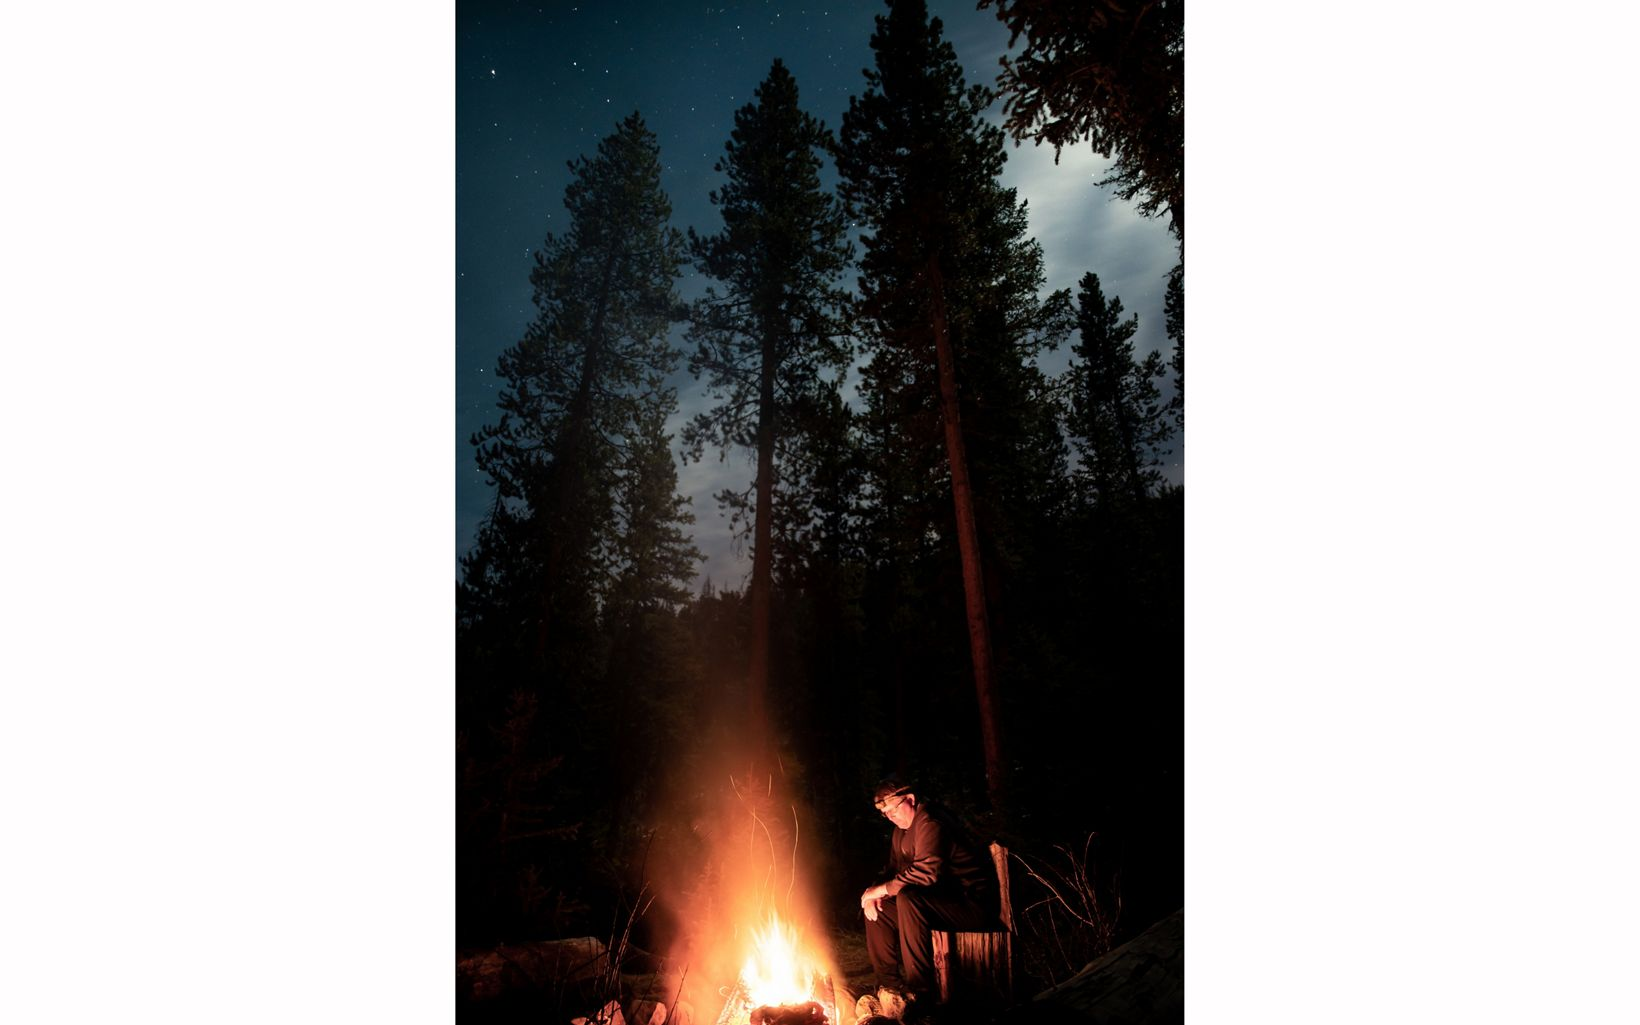 Man by campfire in forest at night.